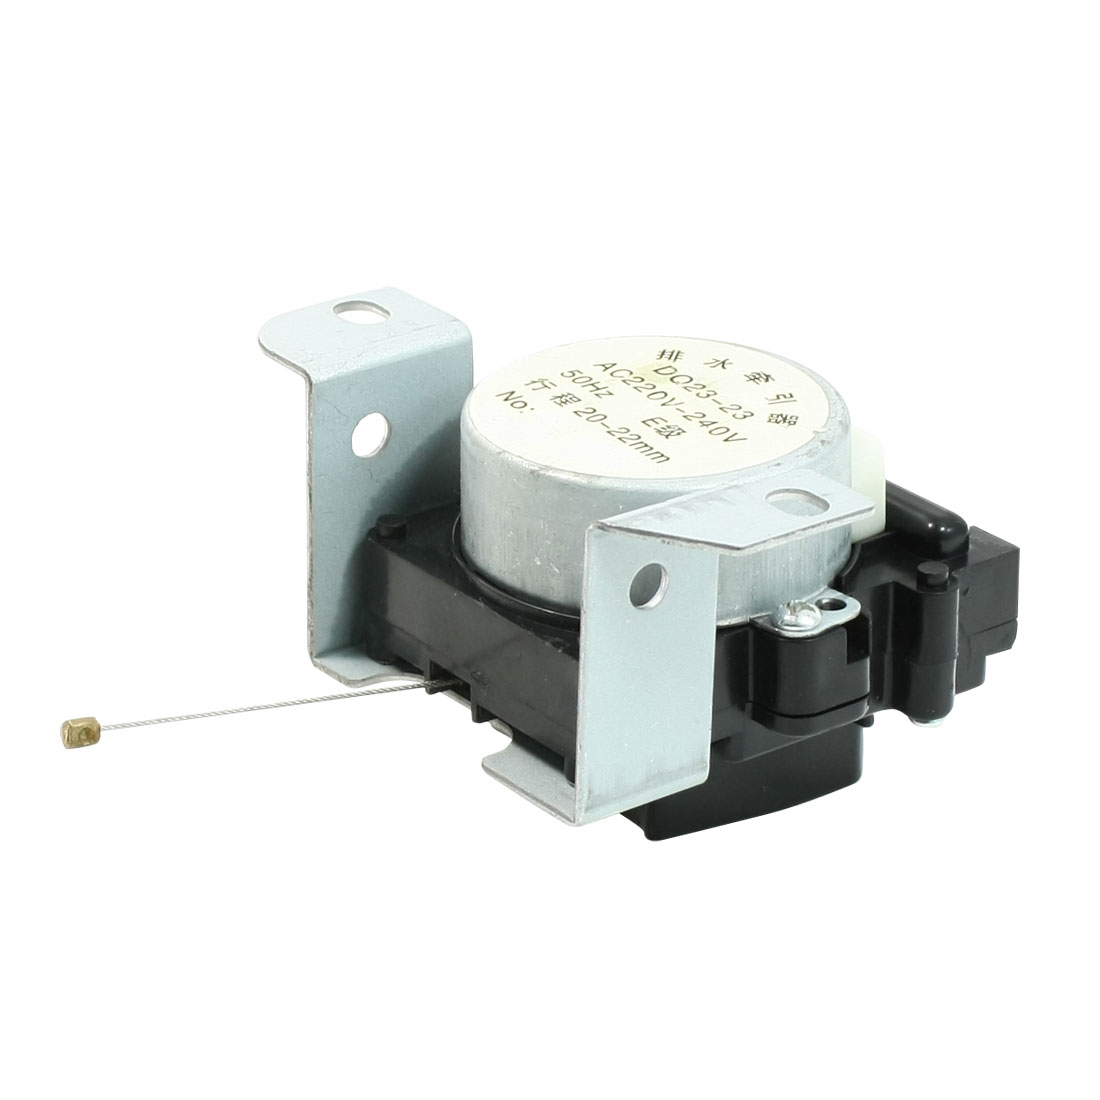 Replacement Drain Valve Tractor for Haier Washer Machine AC 220-240V 50Hz